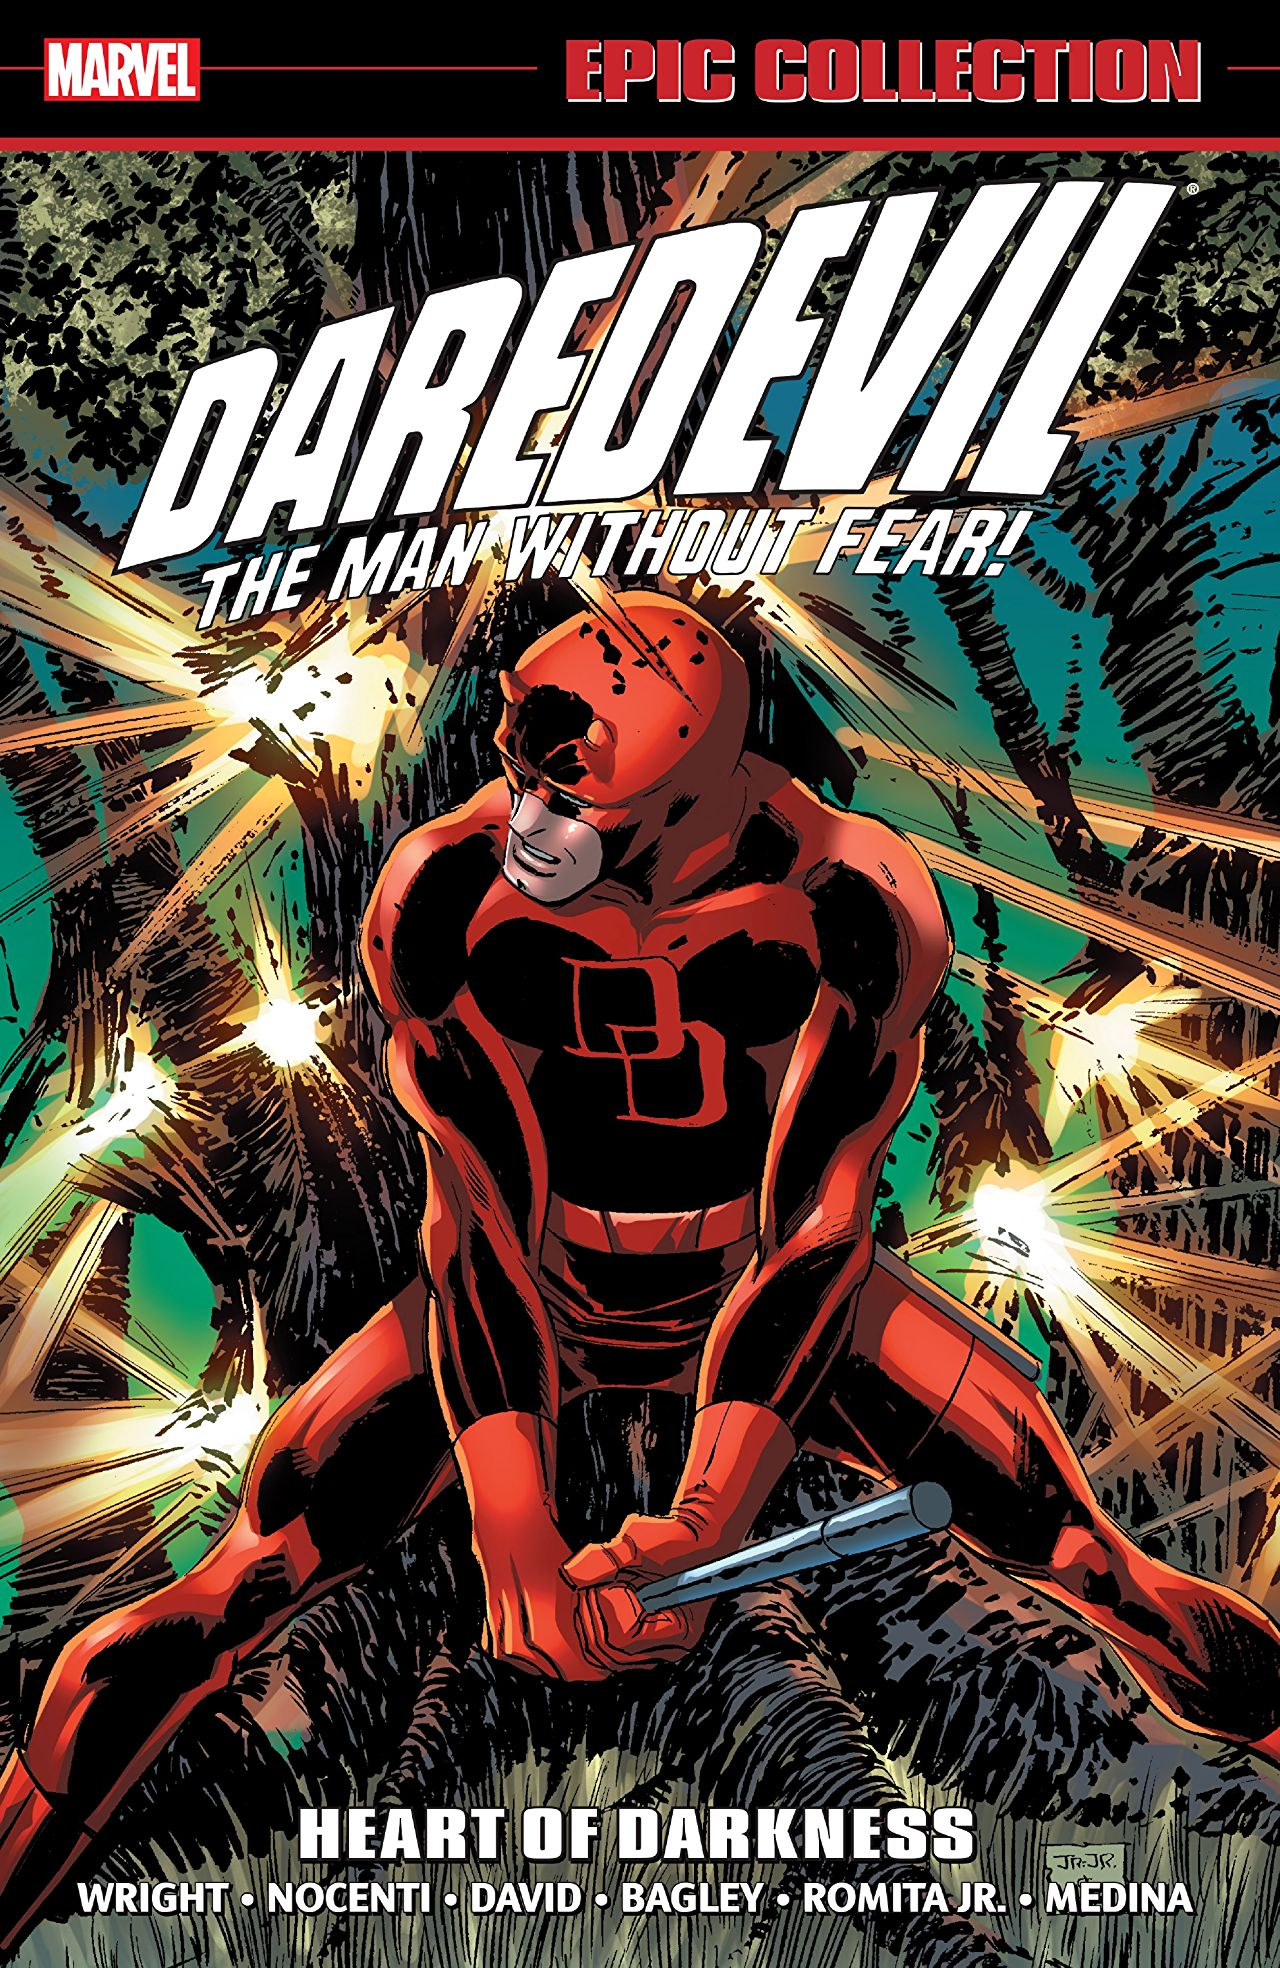 'Daredevil Epic Collection: Heart of Darkness' review: A must-have for Daredevil fans